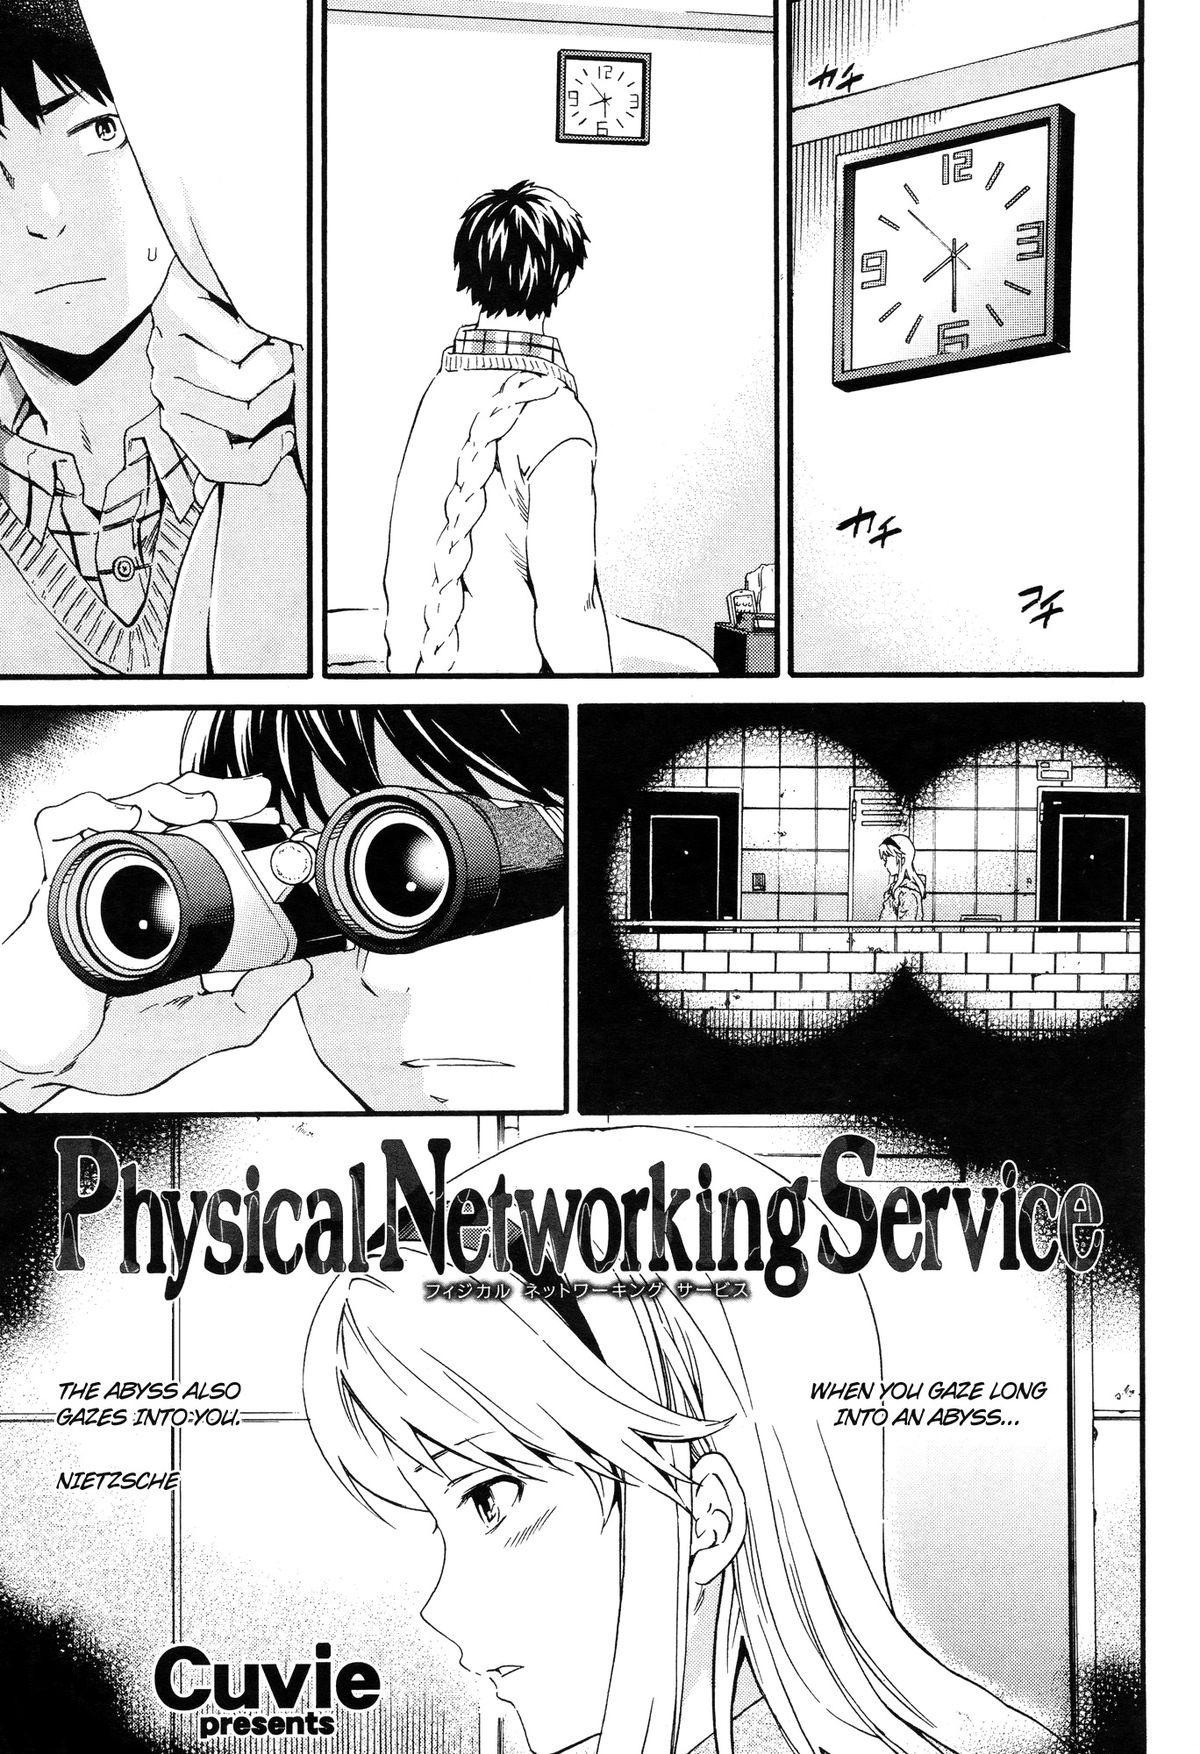 Physical Networking Service 0